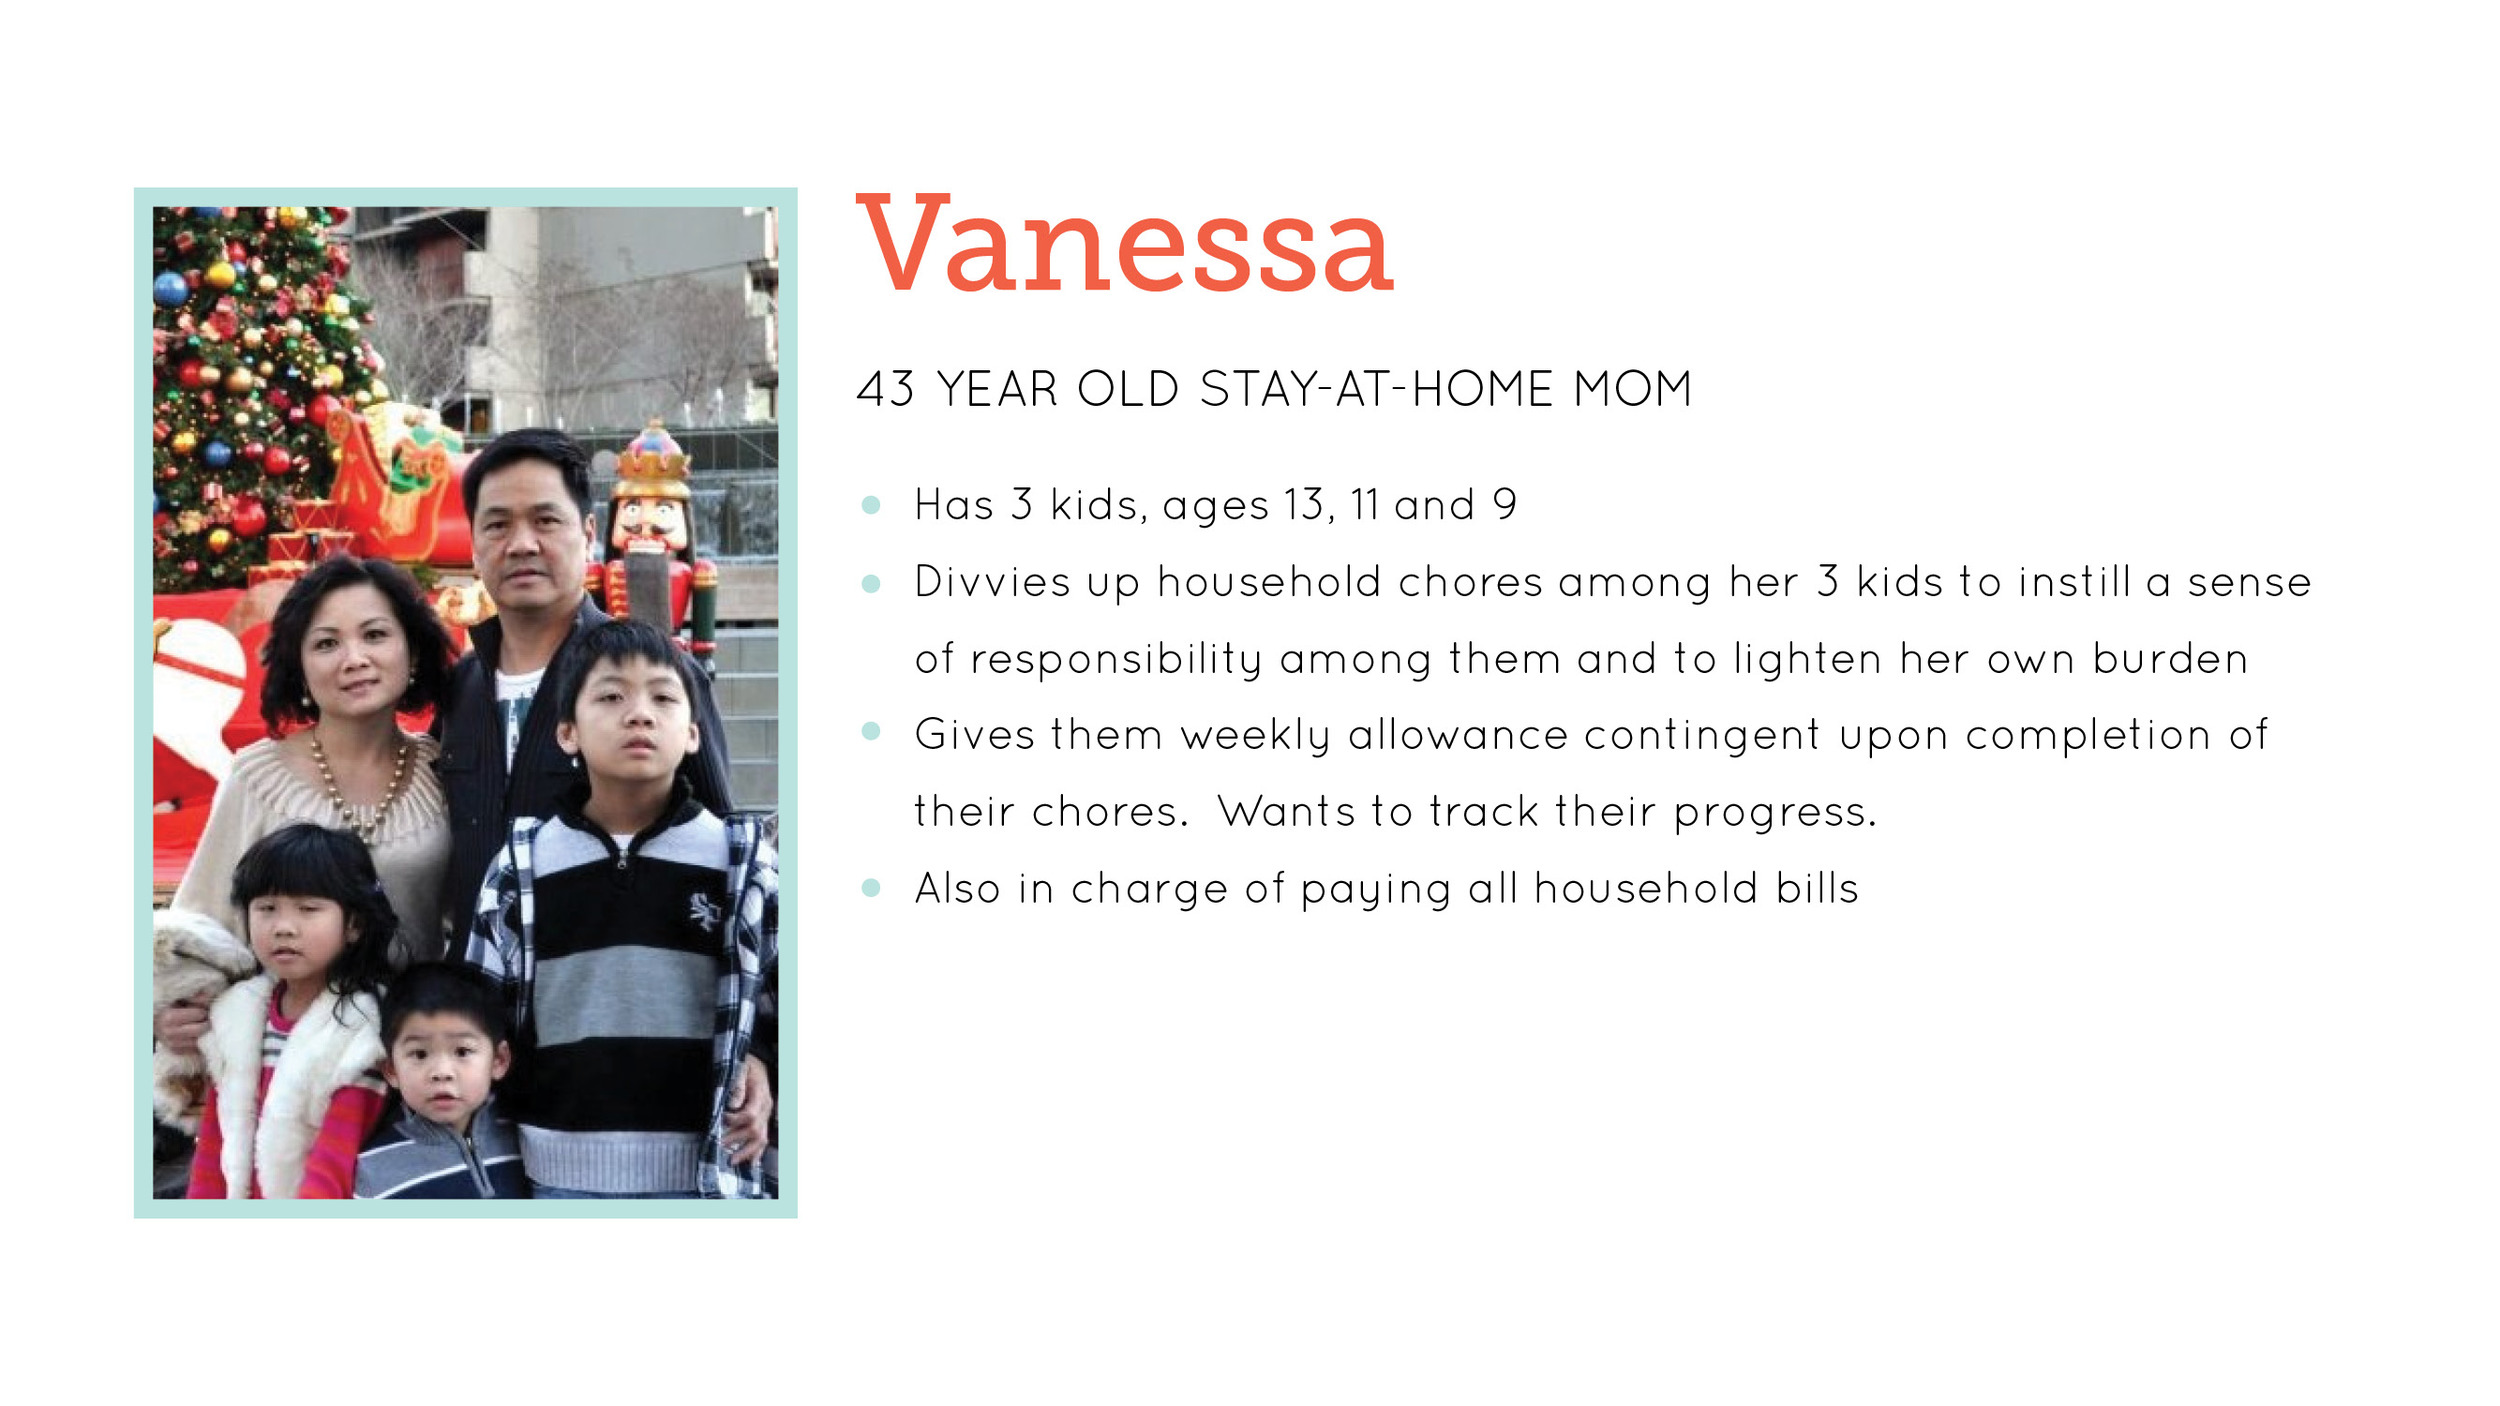 USER DESCRIPTION: Our secondary user was Vanessa, a stay-at-home mom who wanted to track the progress of her children's chores.